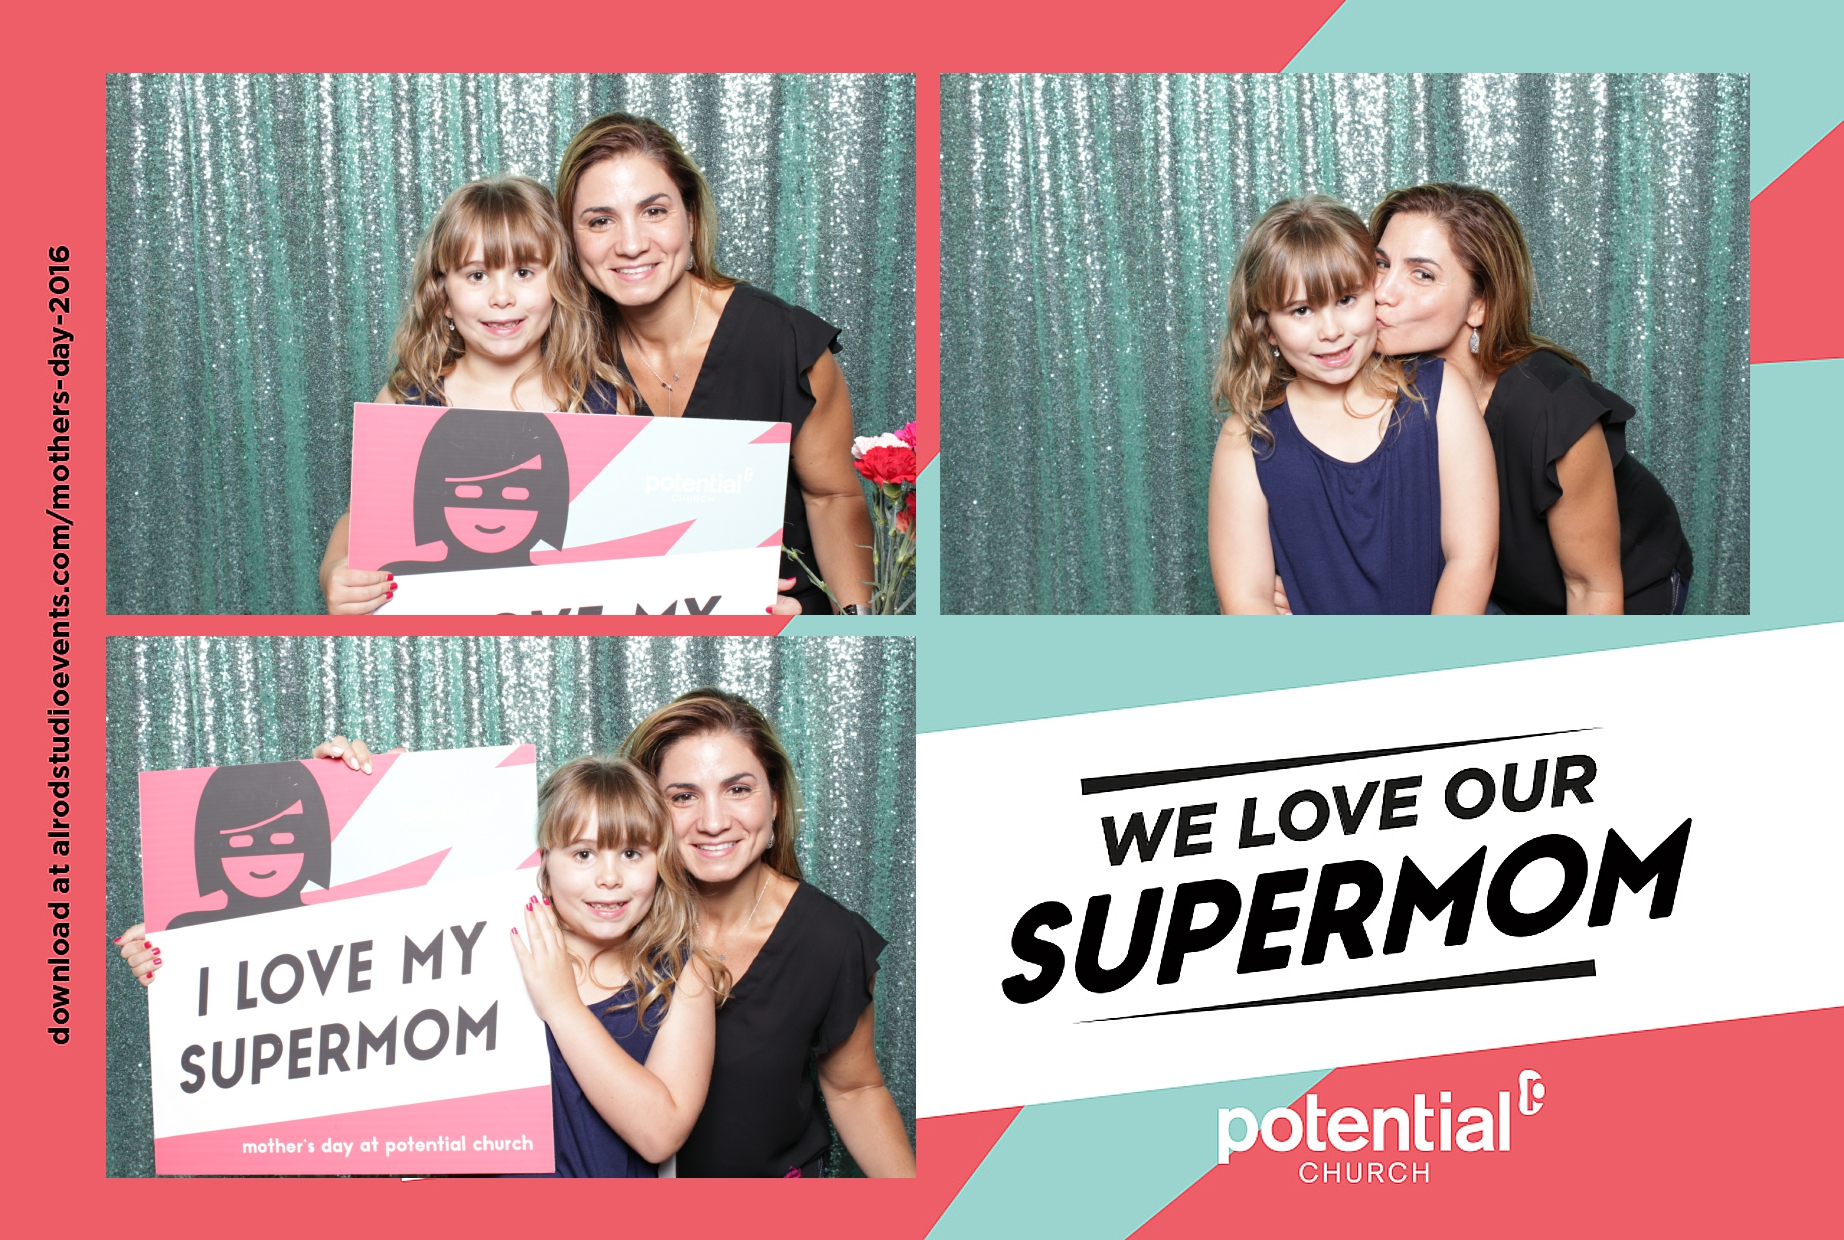 Mother's Day Photo Booth at Potential Church